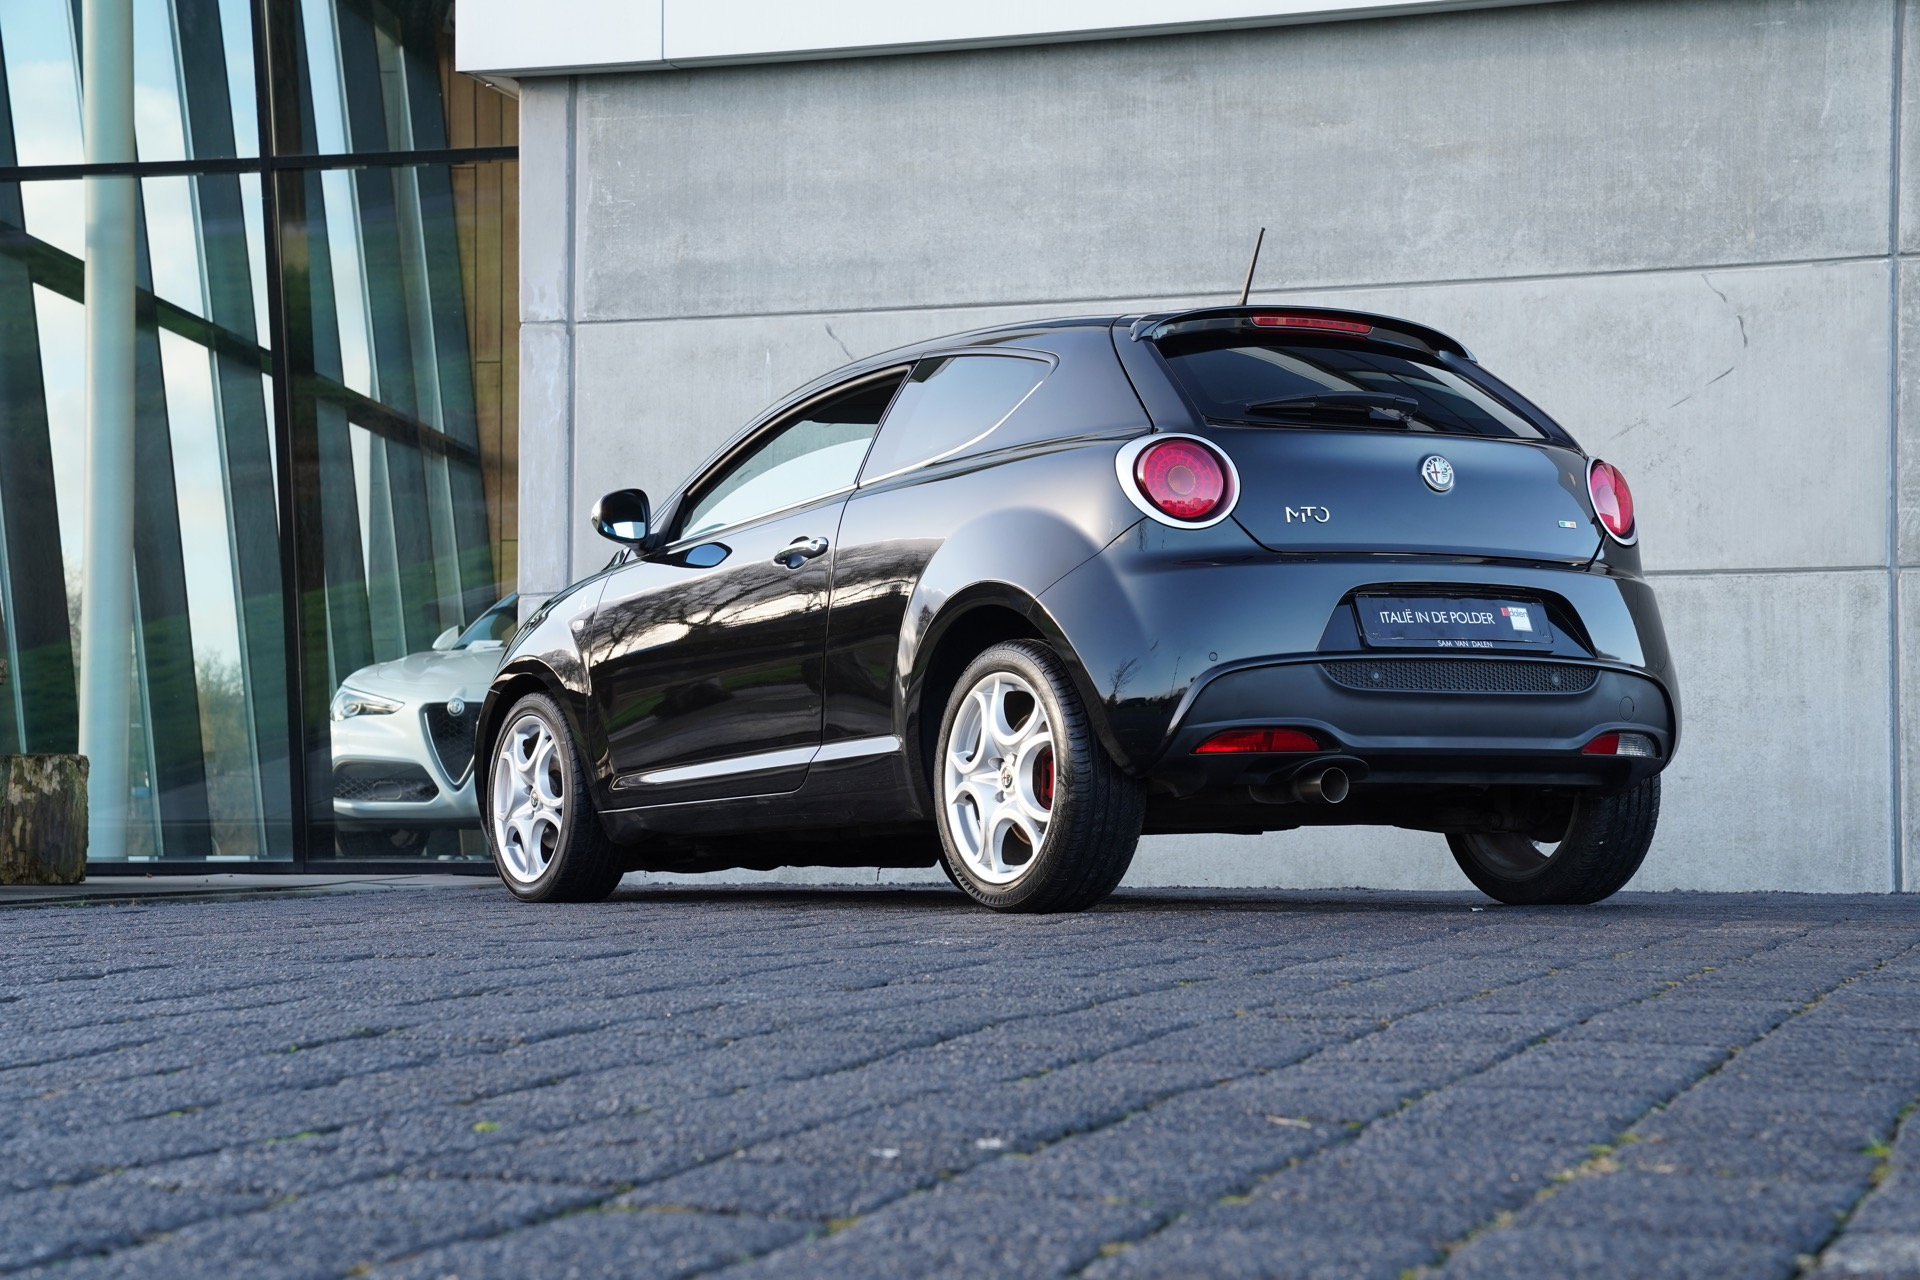 ALFA ROMEO MITO 1.4 TURBO M-AIR TCT